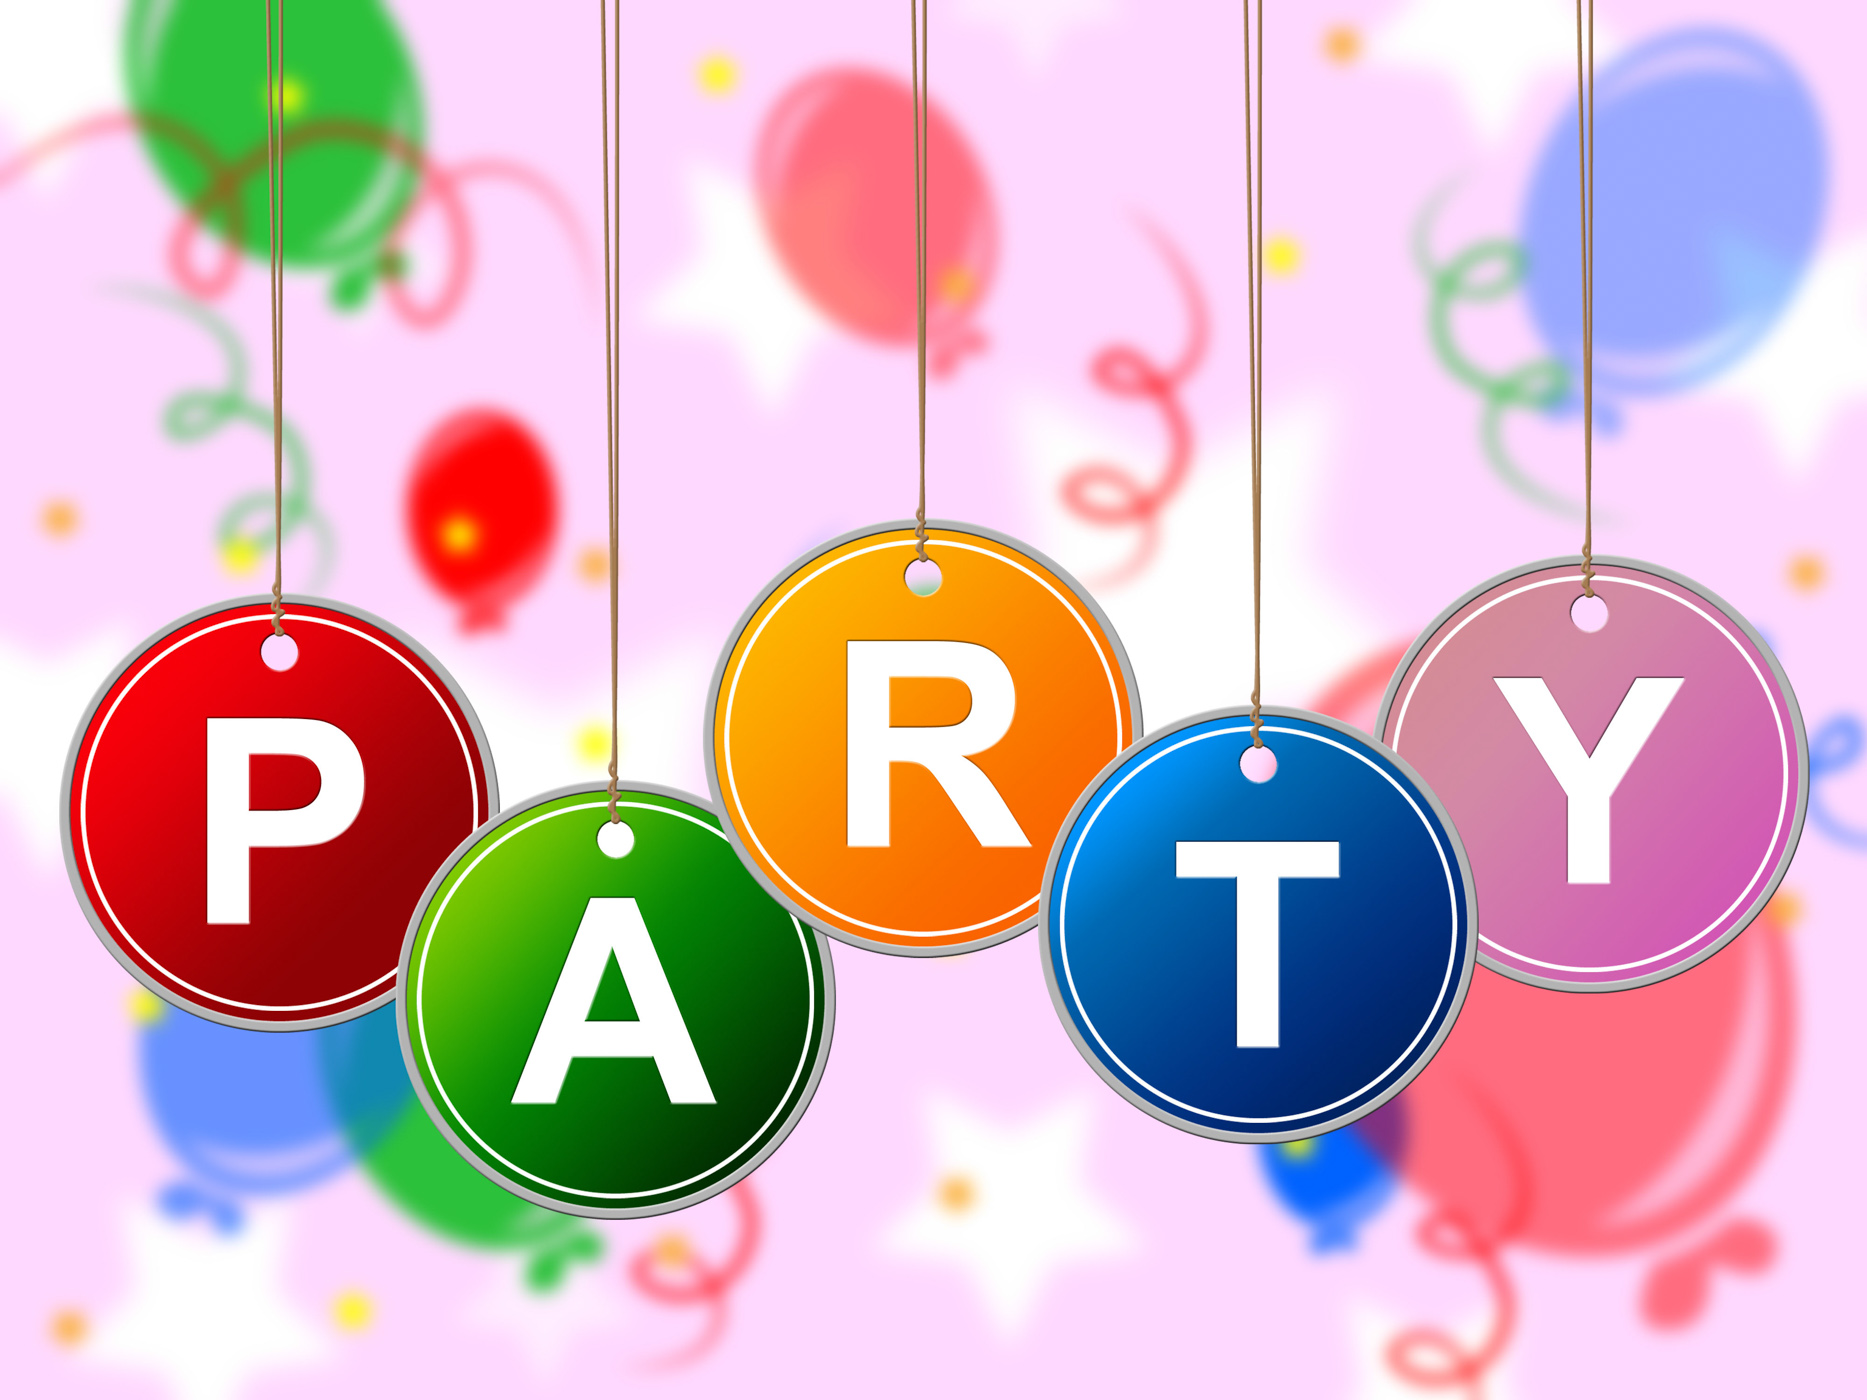 Party Kids Shows Youths Parties And Child, Celebrate, Kids, Youth, Youngsters, HQ Photo